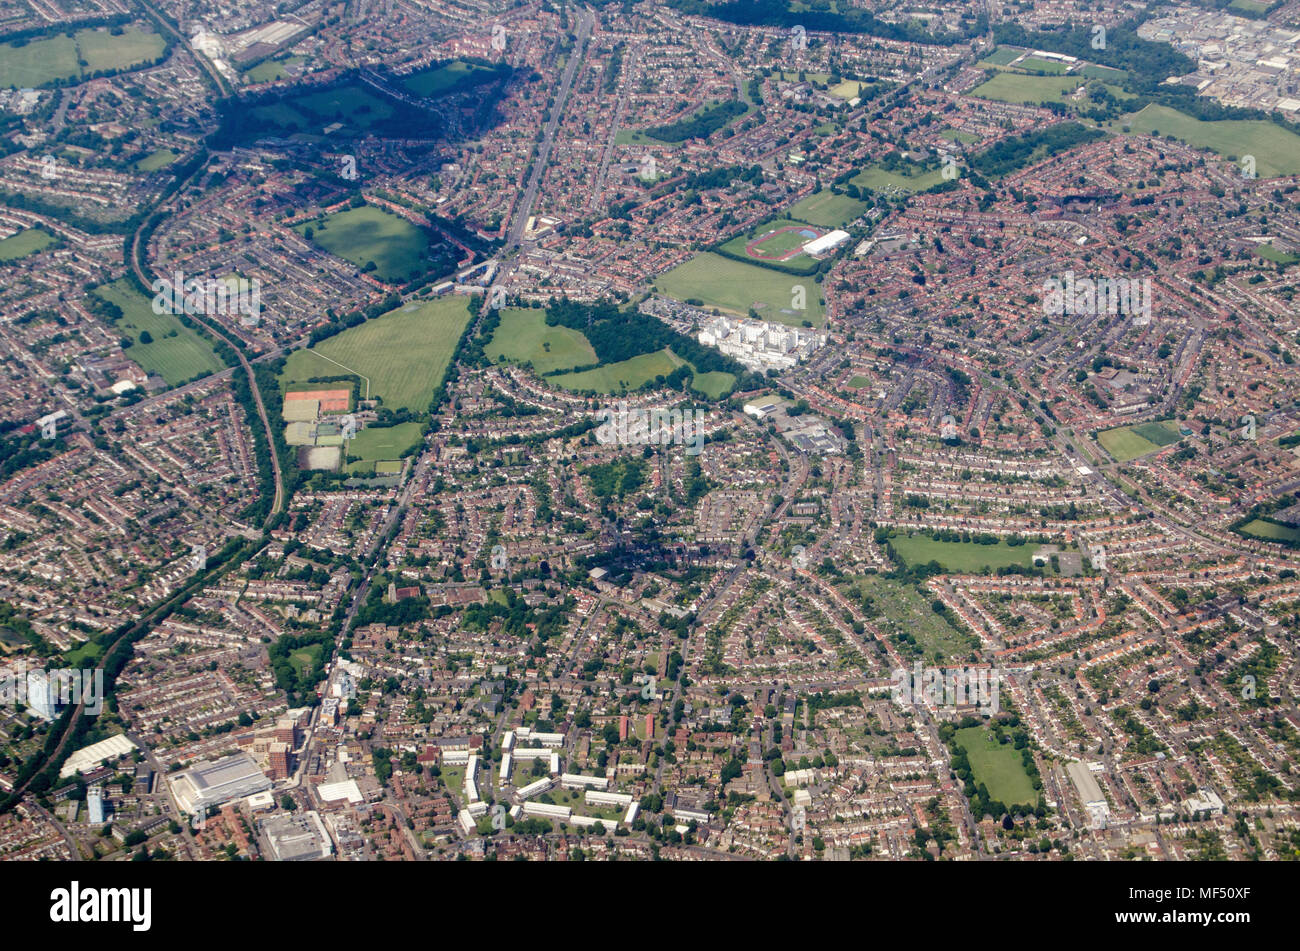 Aerial view of the London Borough of Sutton including the St Helier Hospital and David Weir Leisure Centre plus the Morden depot of the Northern Line  - Stock Image